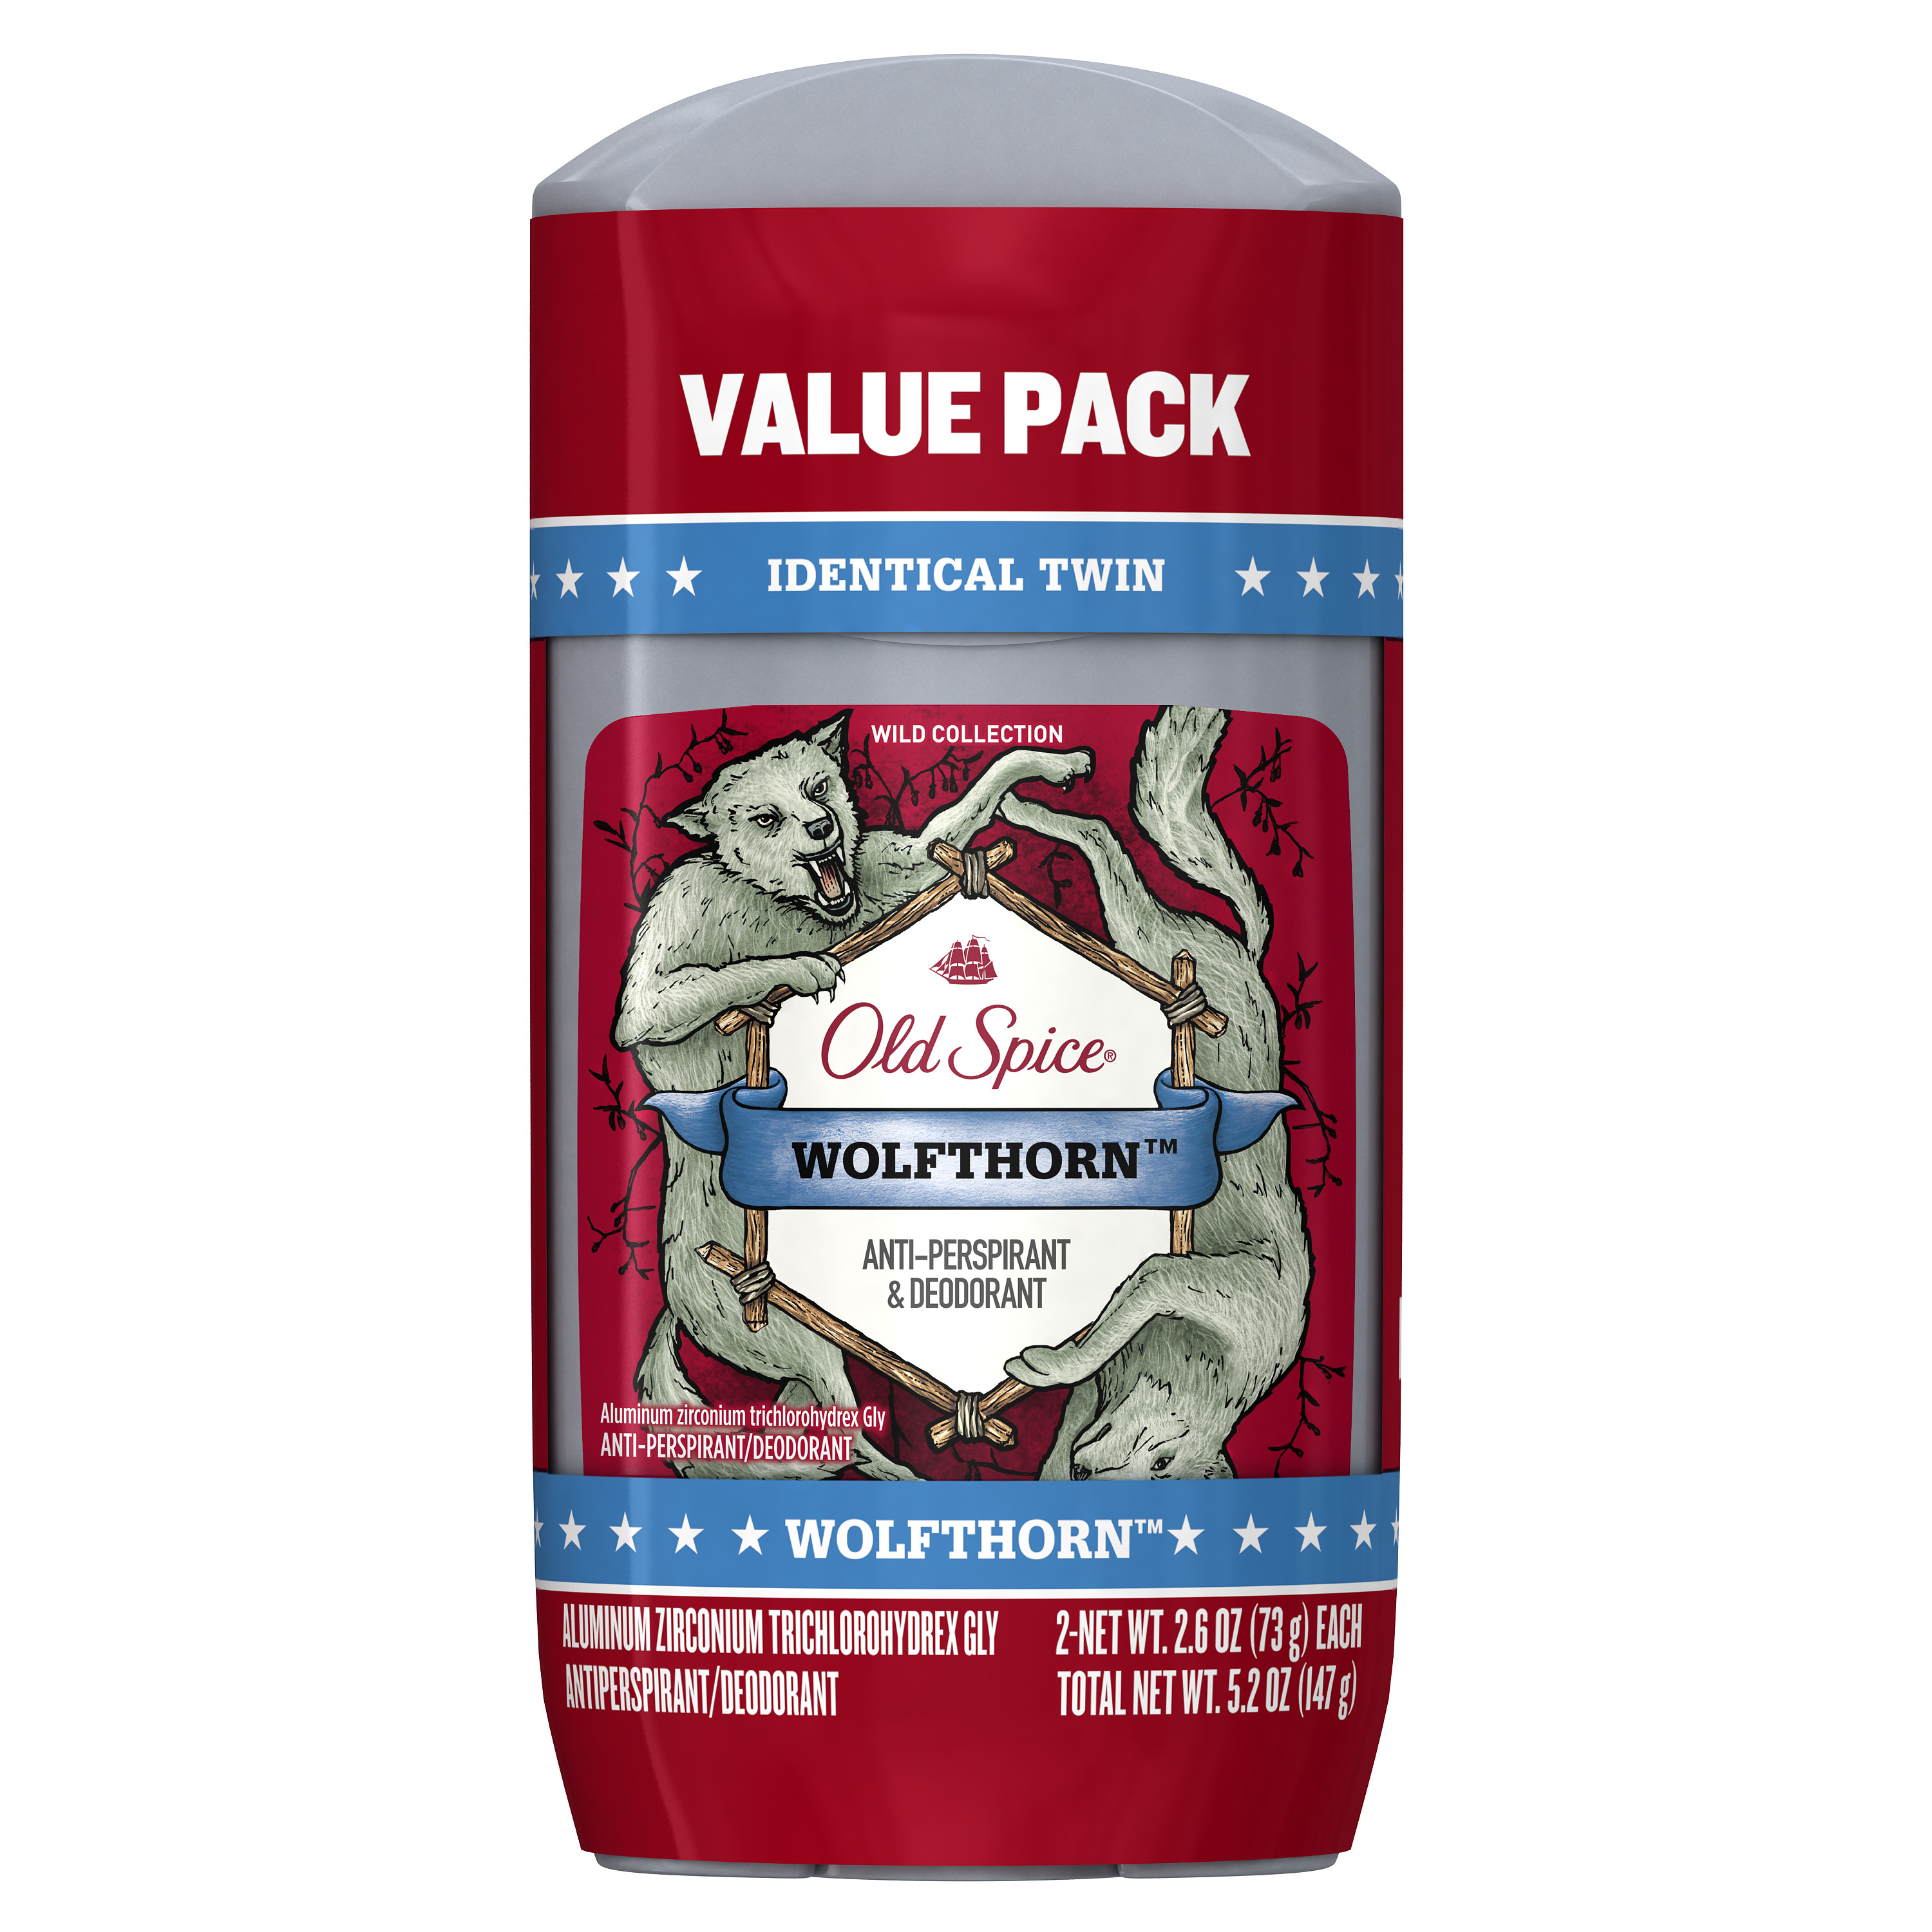 Old Spice Wild Collection Wolfthorn Antiperspirant and Deodorant 2.6 oz Twin